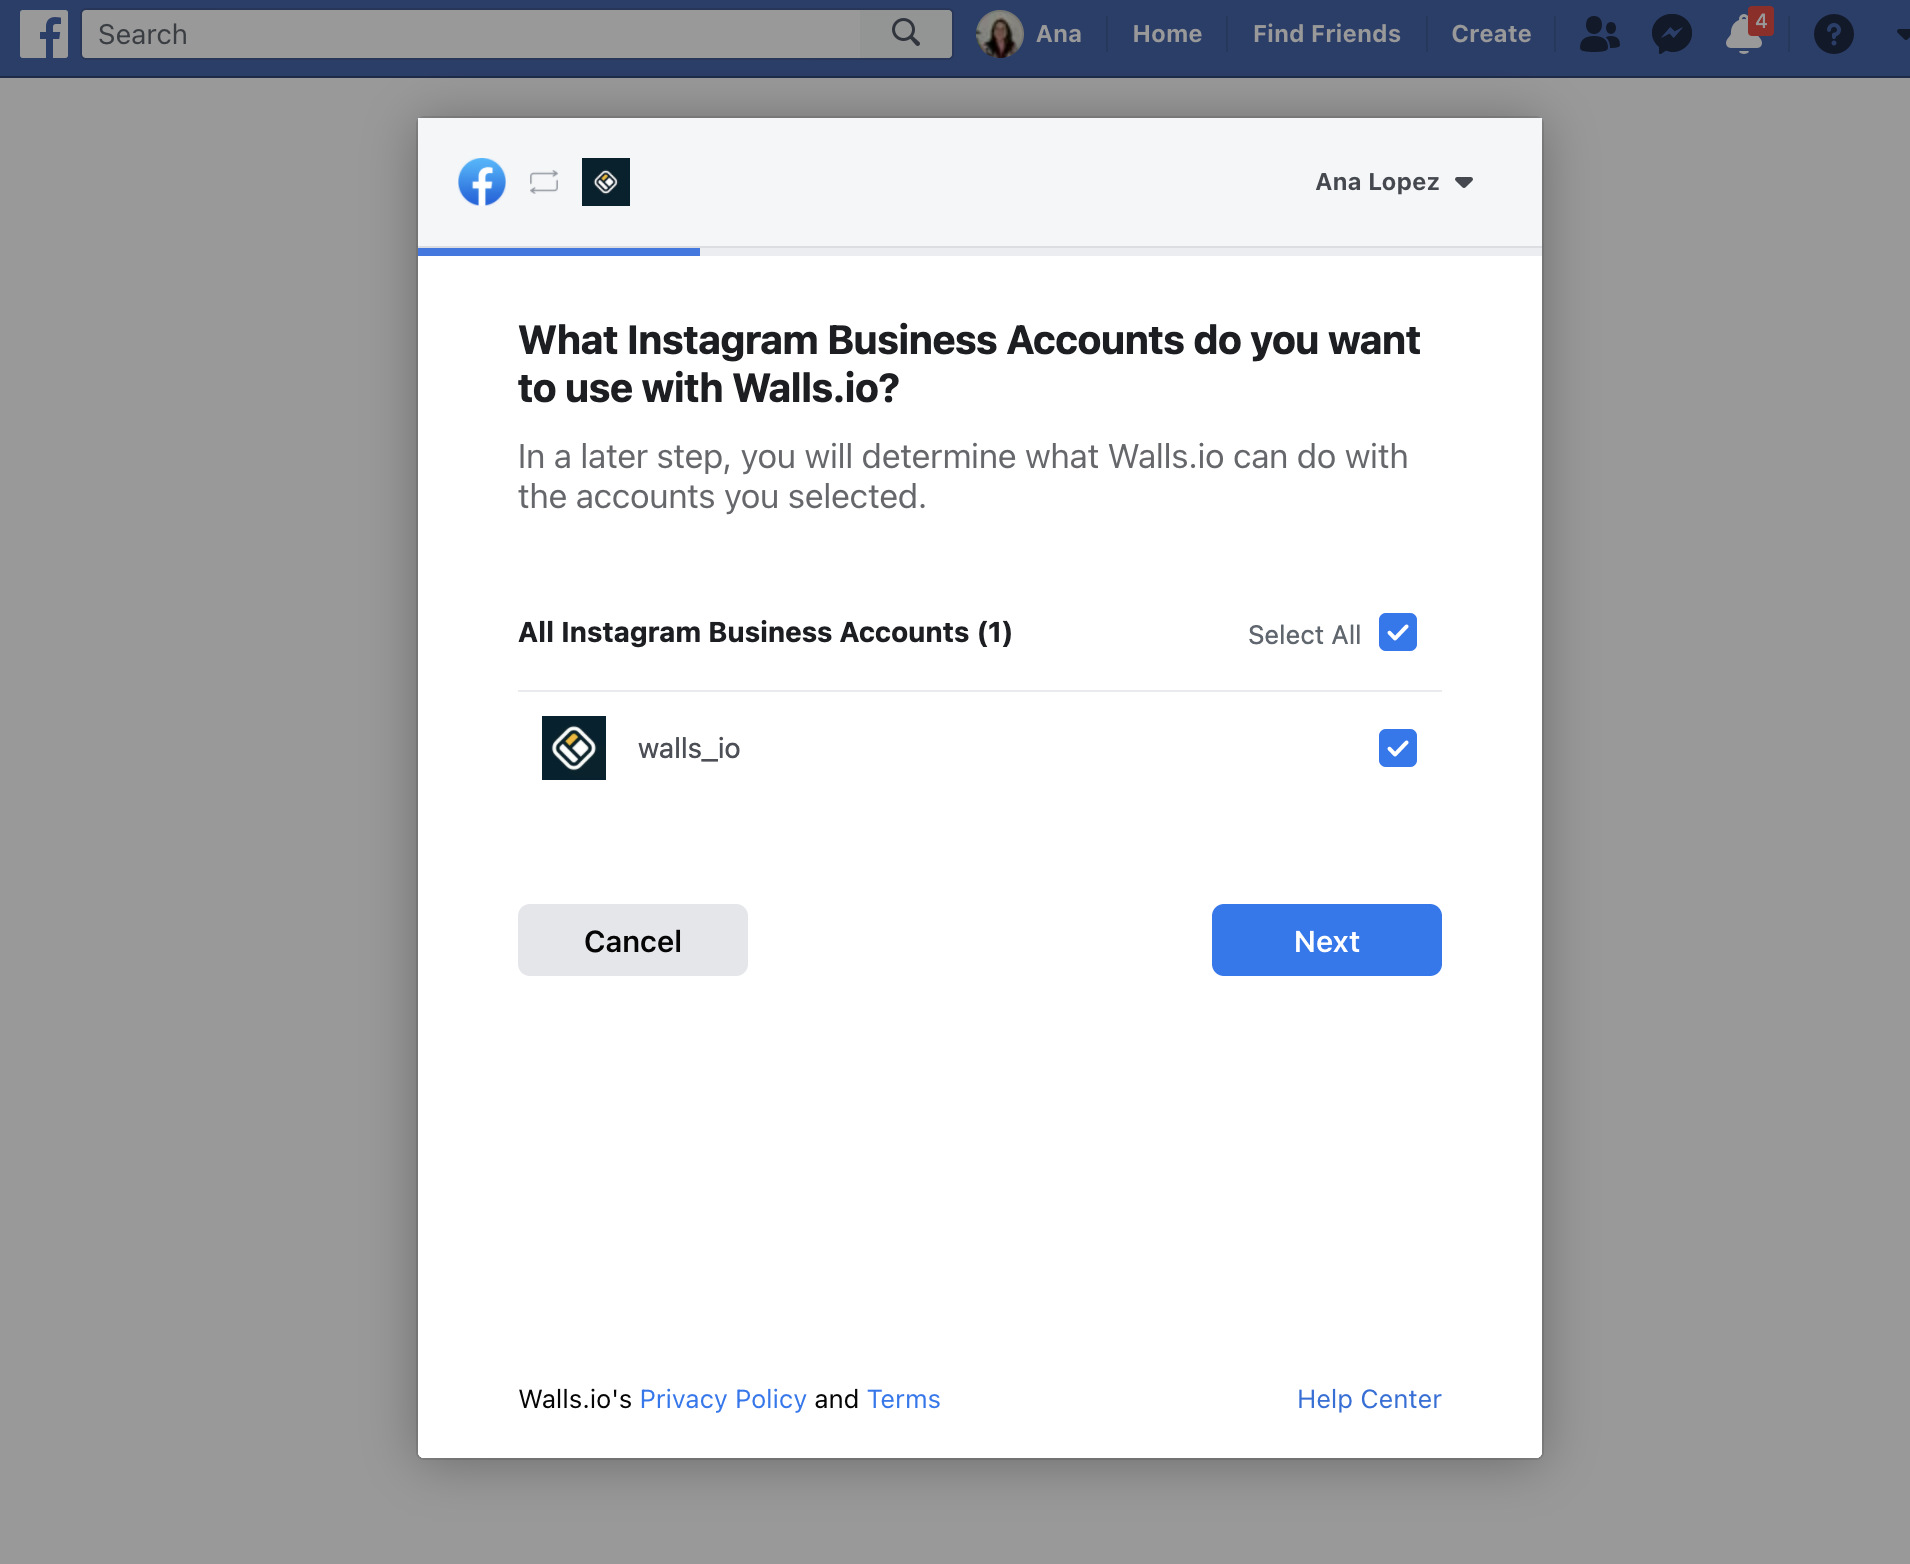 Facebook pop-up asking for permission to access Instagram Business account.